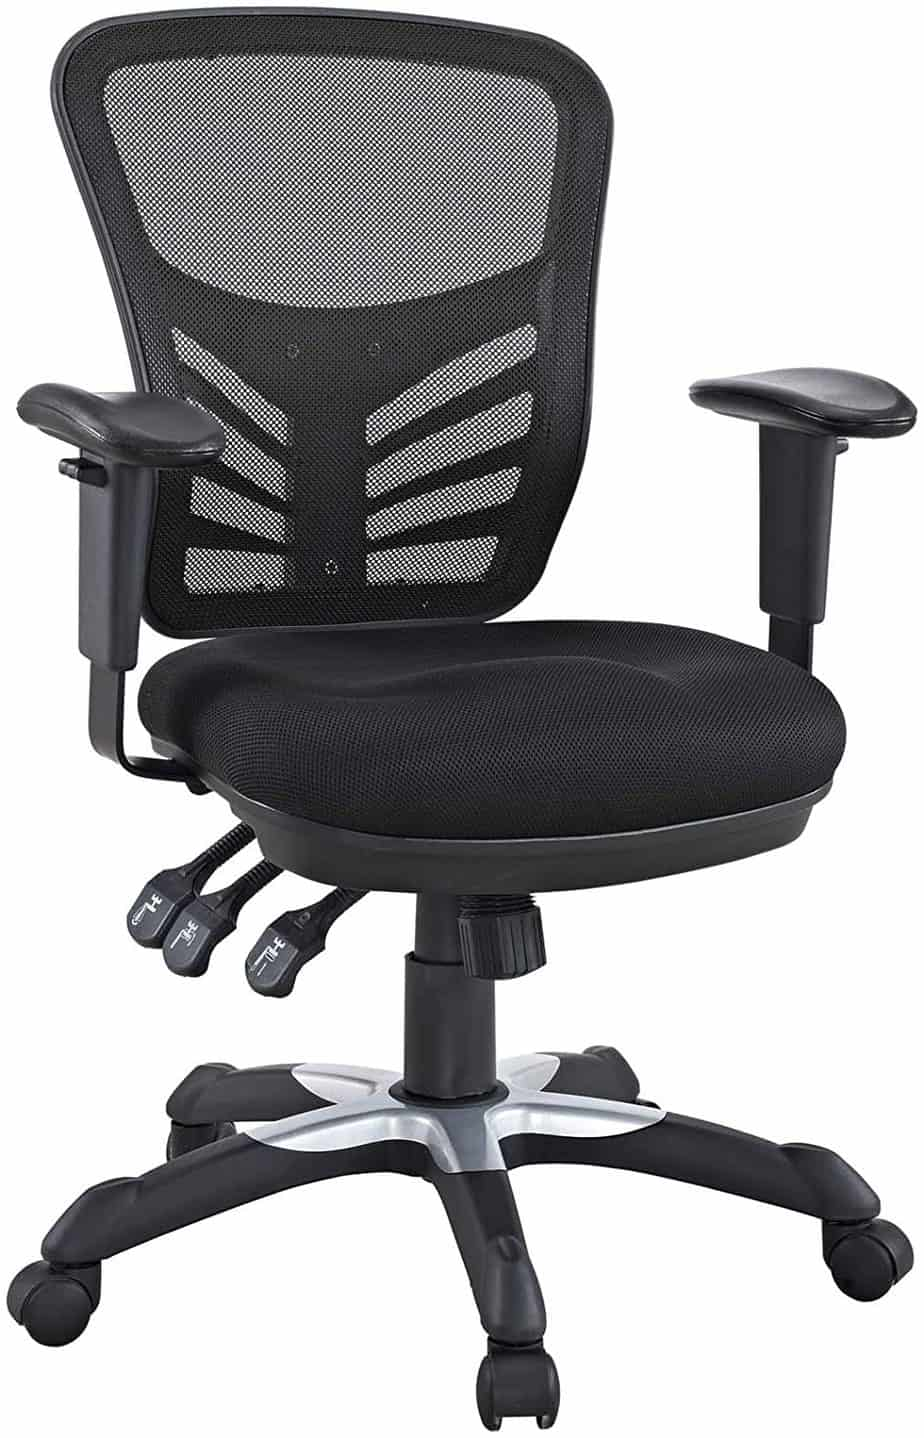 Modway Articulate Ergonomic Mesh Office chair - best office chair for sciatica